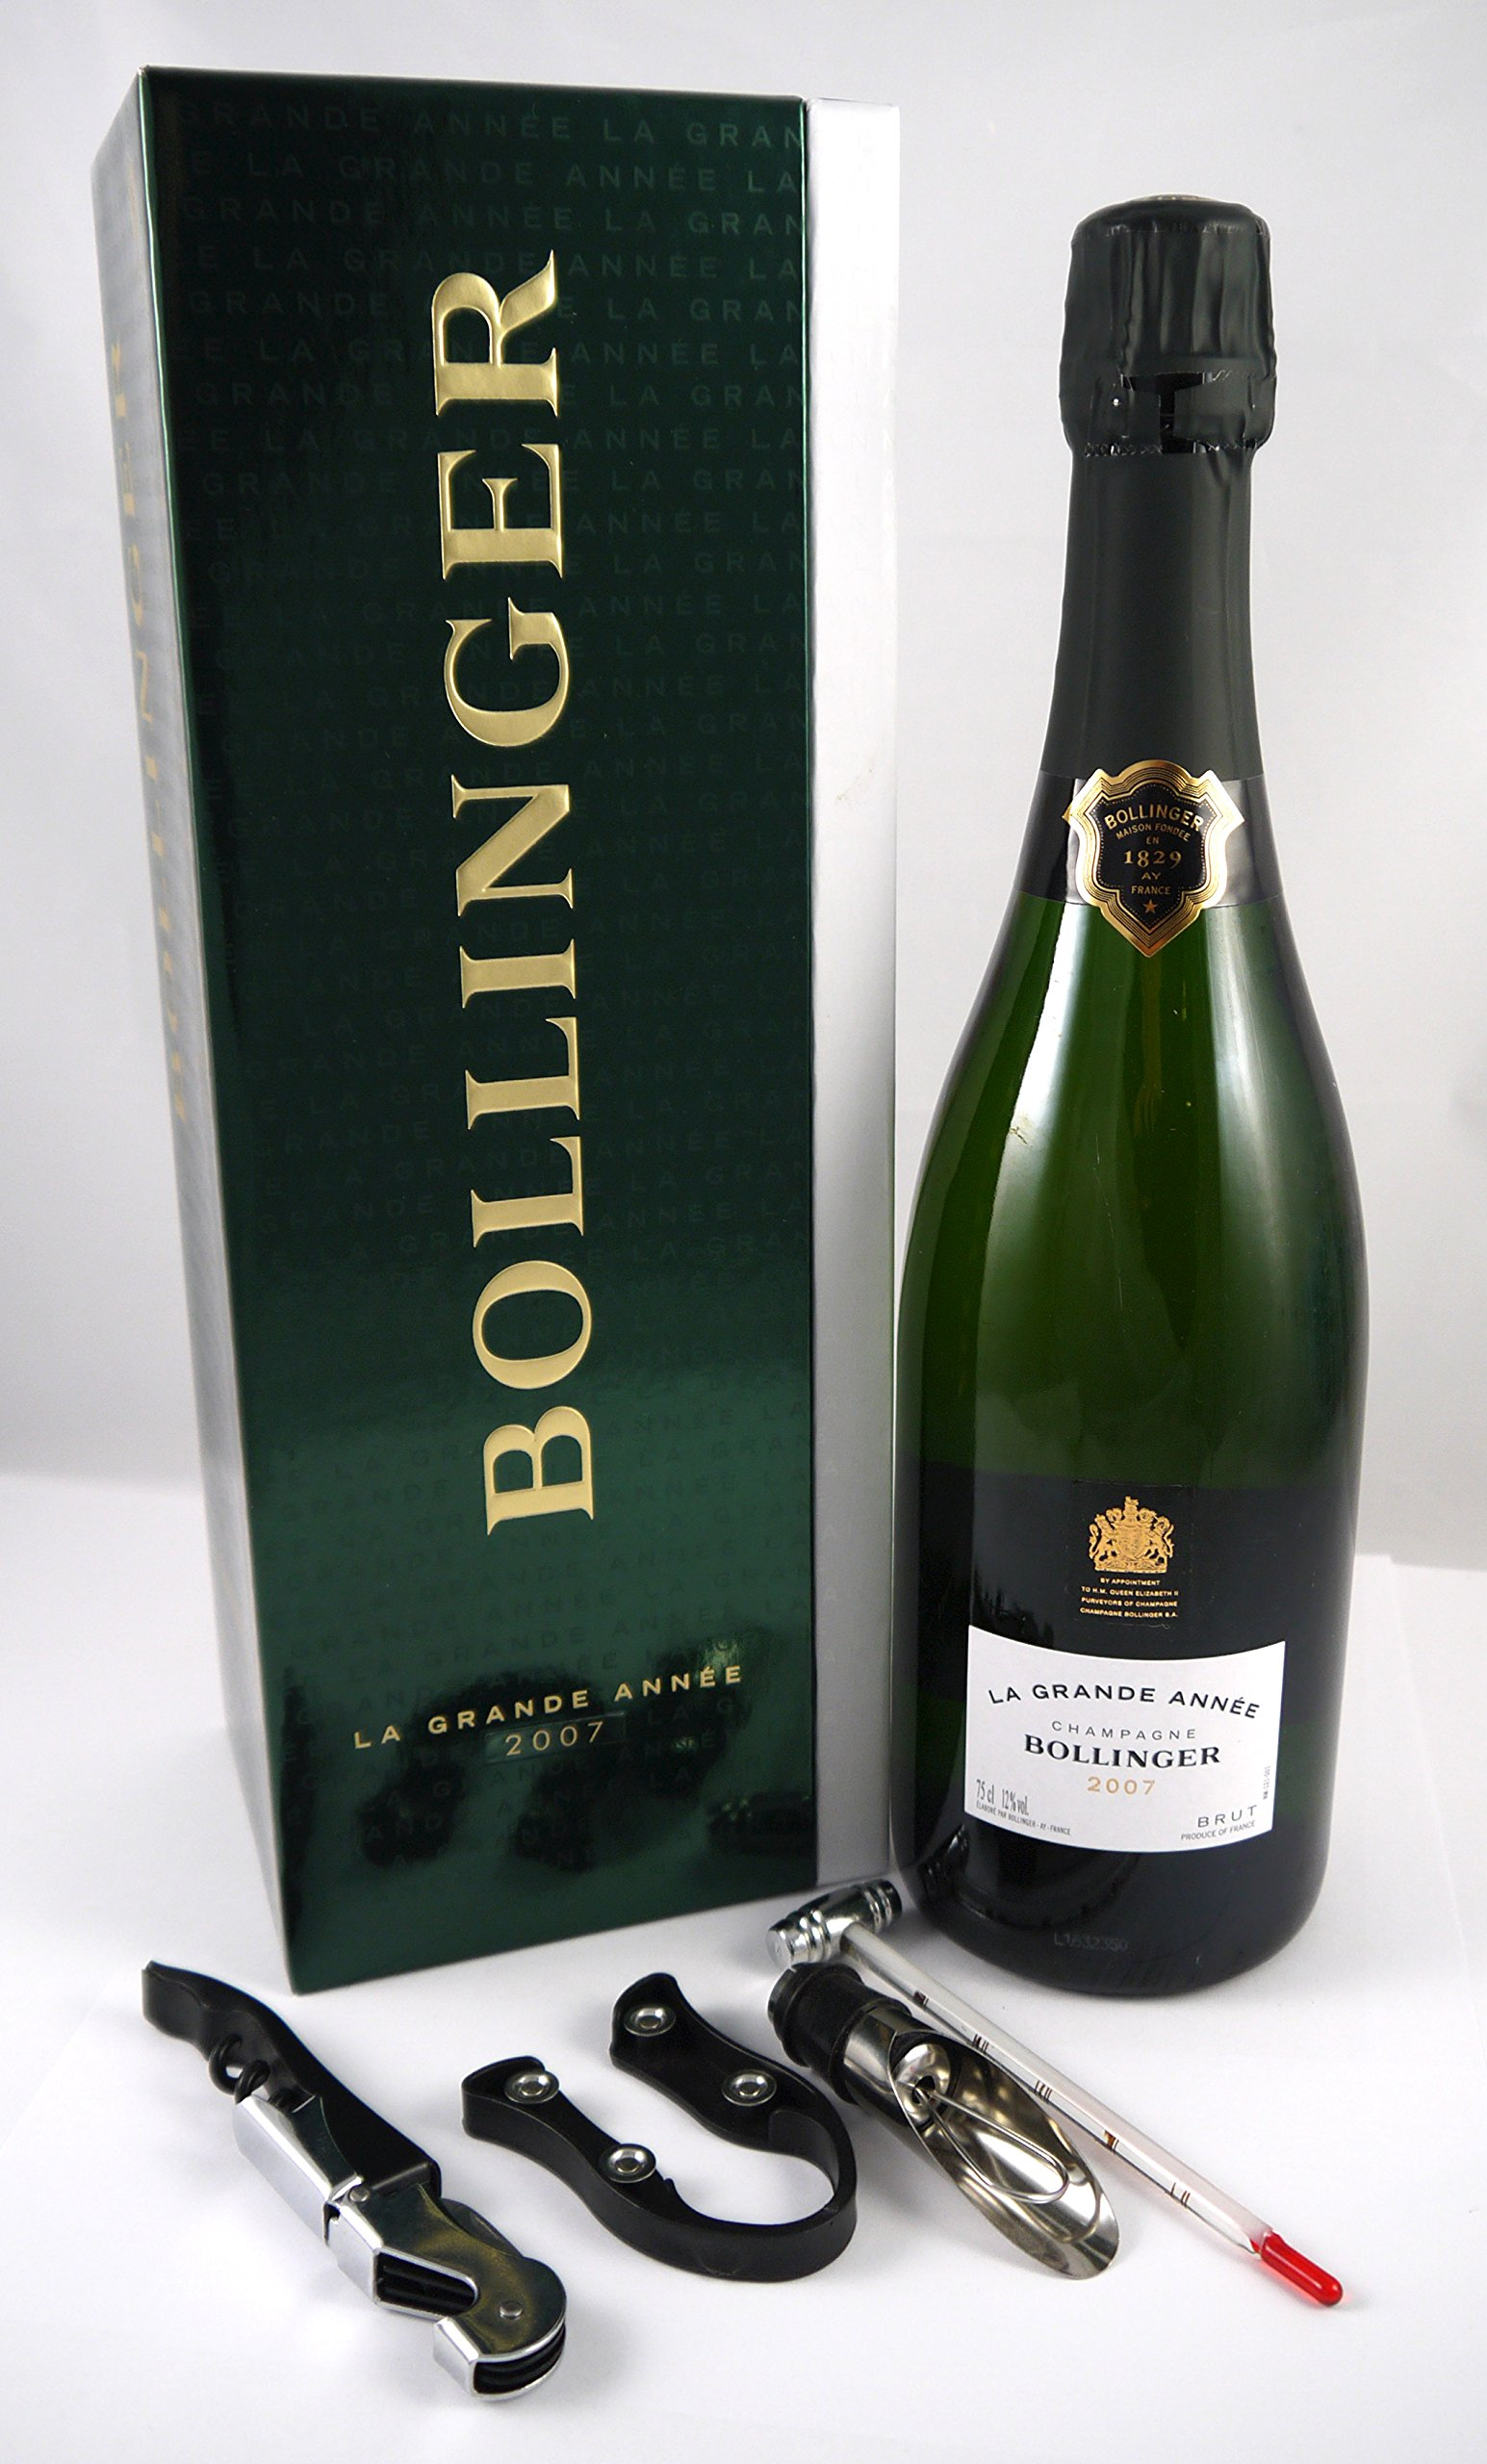 2007 Bollinger Grand Annee Vintage Champagne in its original gift box with four wine accessories.